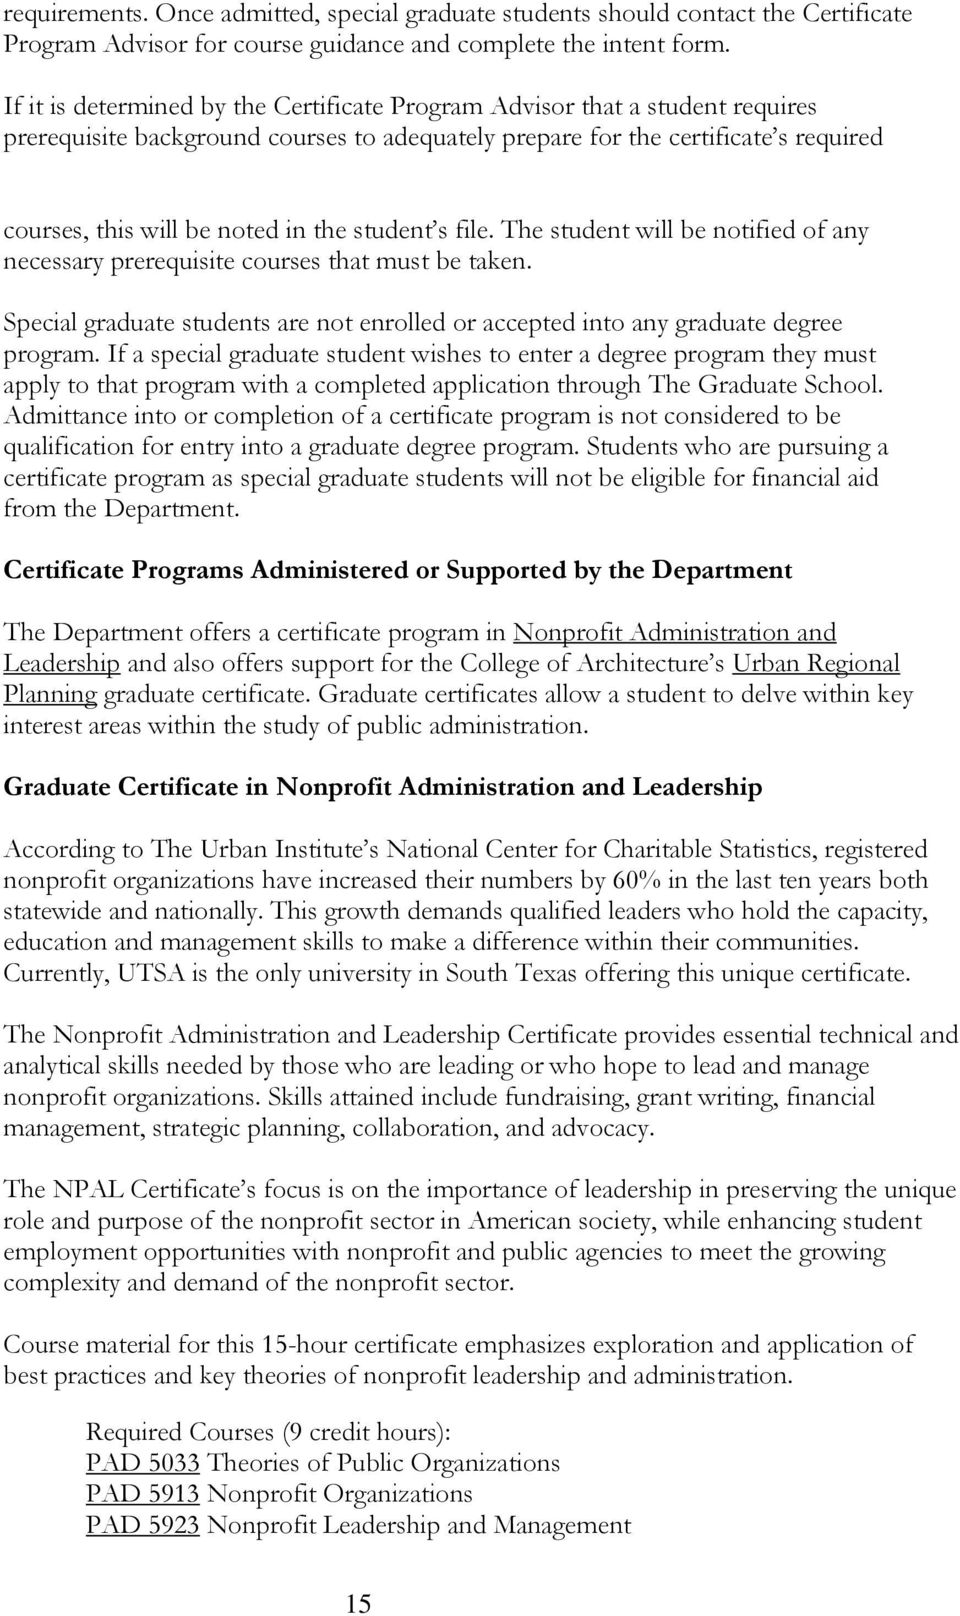 an application essay for a masters degree course in nonprofit organizations management The nonprofit management master's program equips professionals to excel in nonprofit management careers, whether in international or community nonprofits,  for students and professionals who wish to work with mission-based organizations providing some of the most fundamental and important services to our communities,  no.